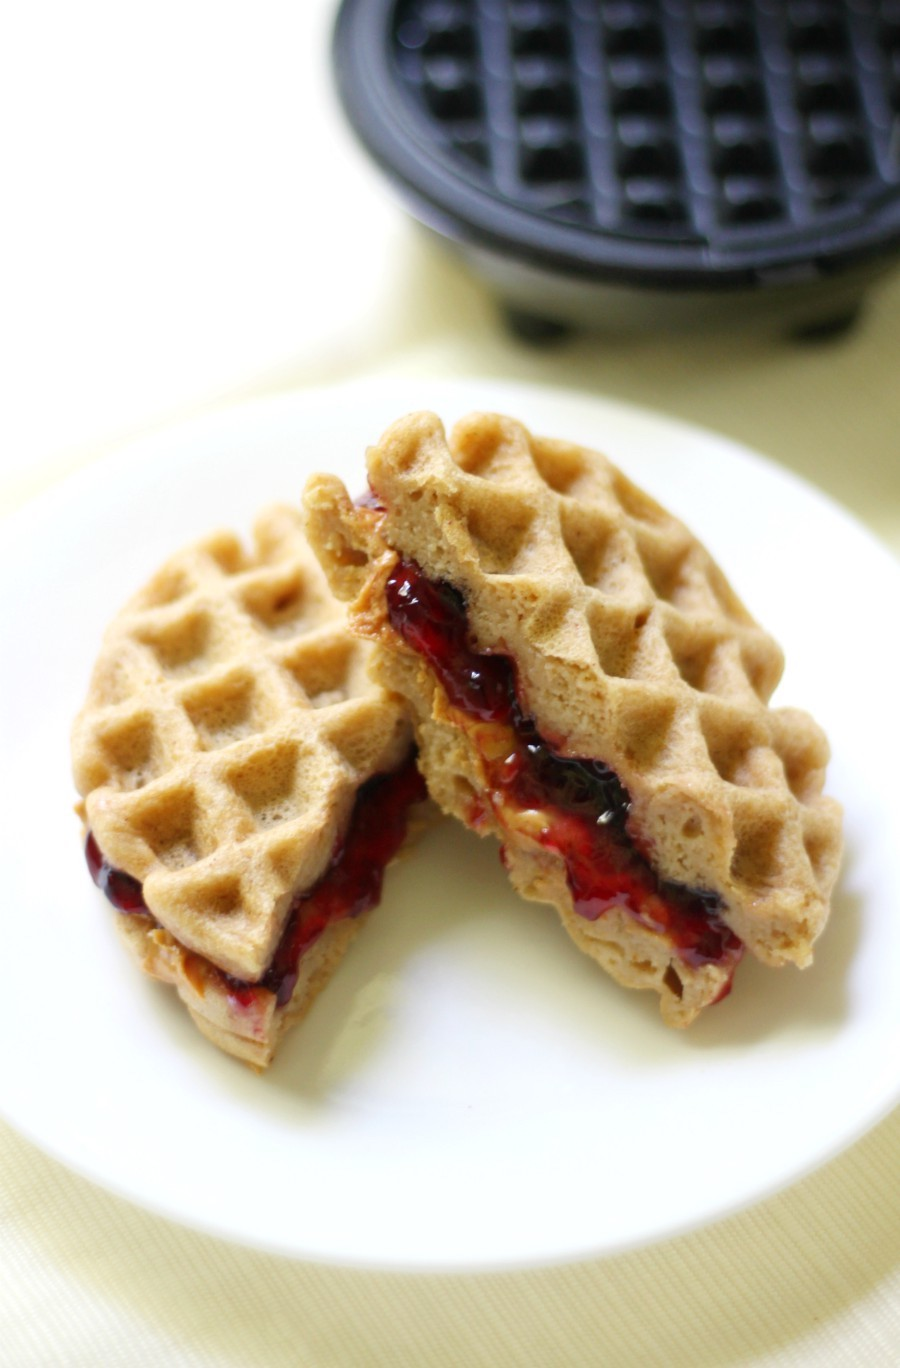 Mini Gluten Free Peanut Butter And Jelly Waffle Sandwiches